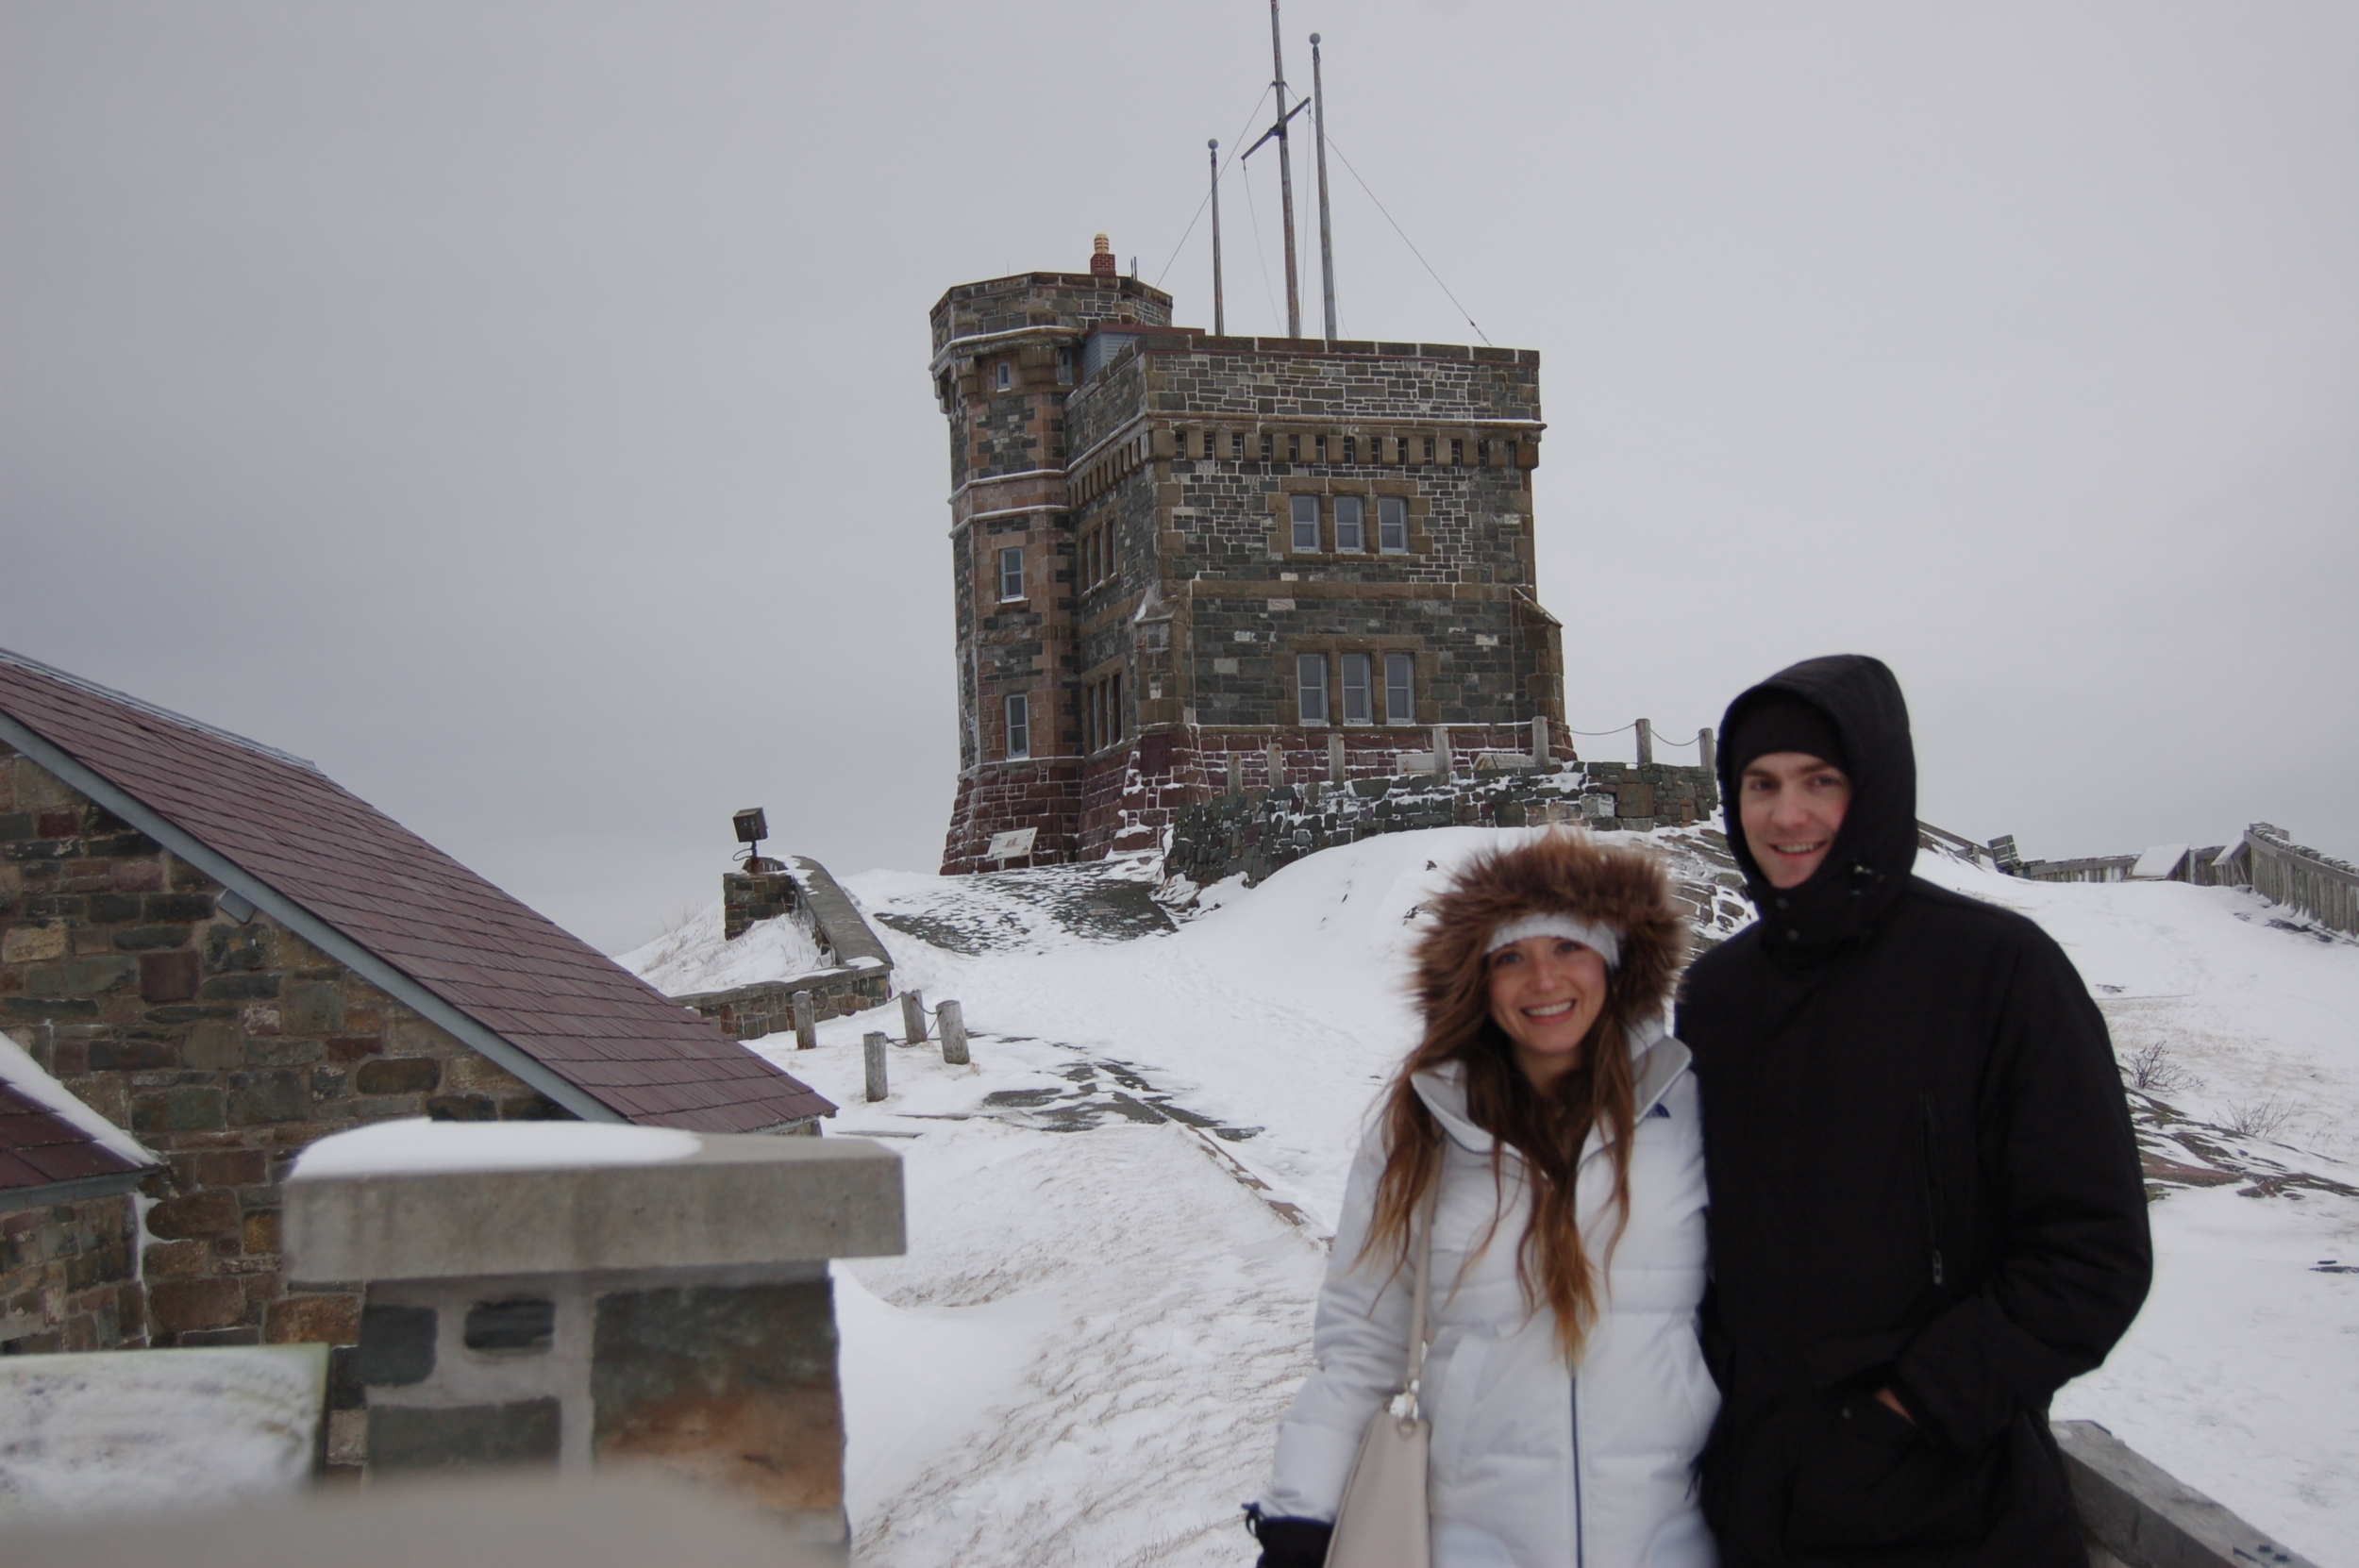 Cabot Tower at Signal Hill